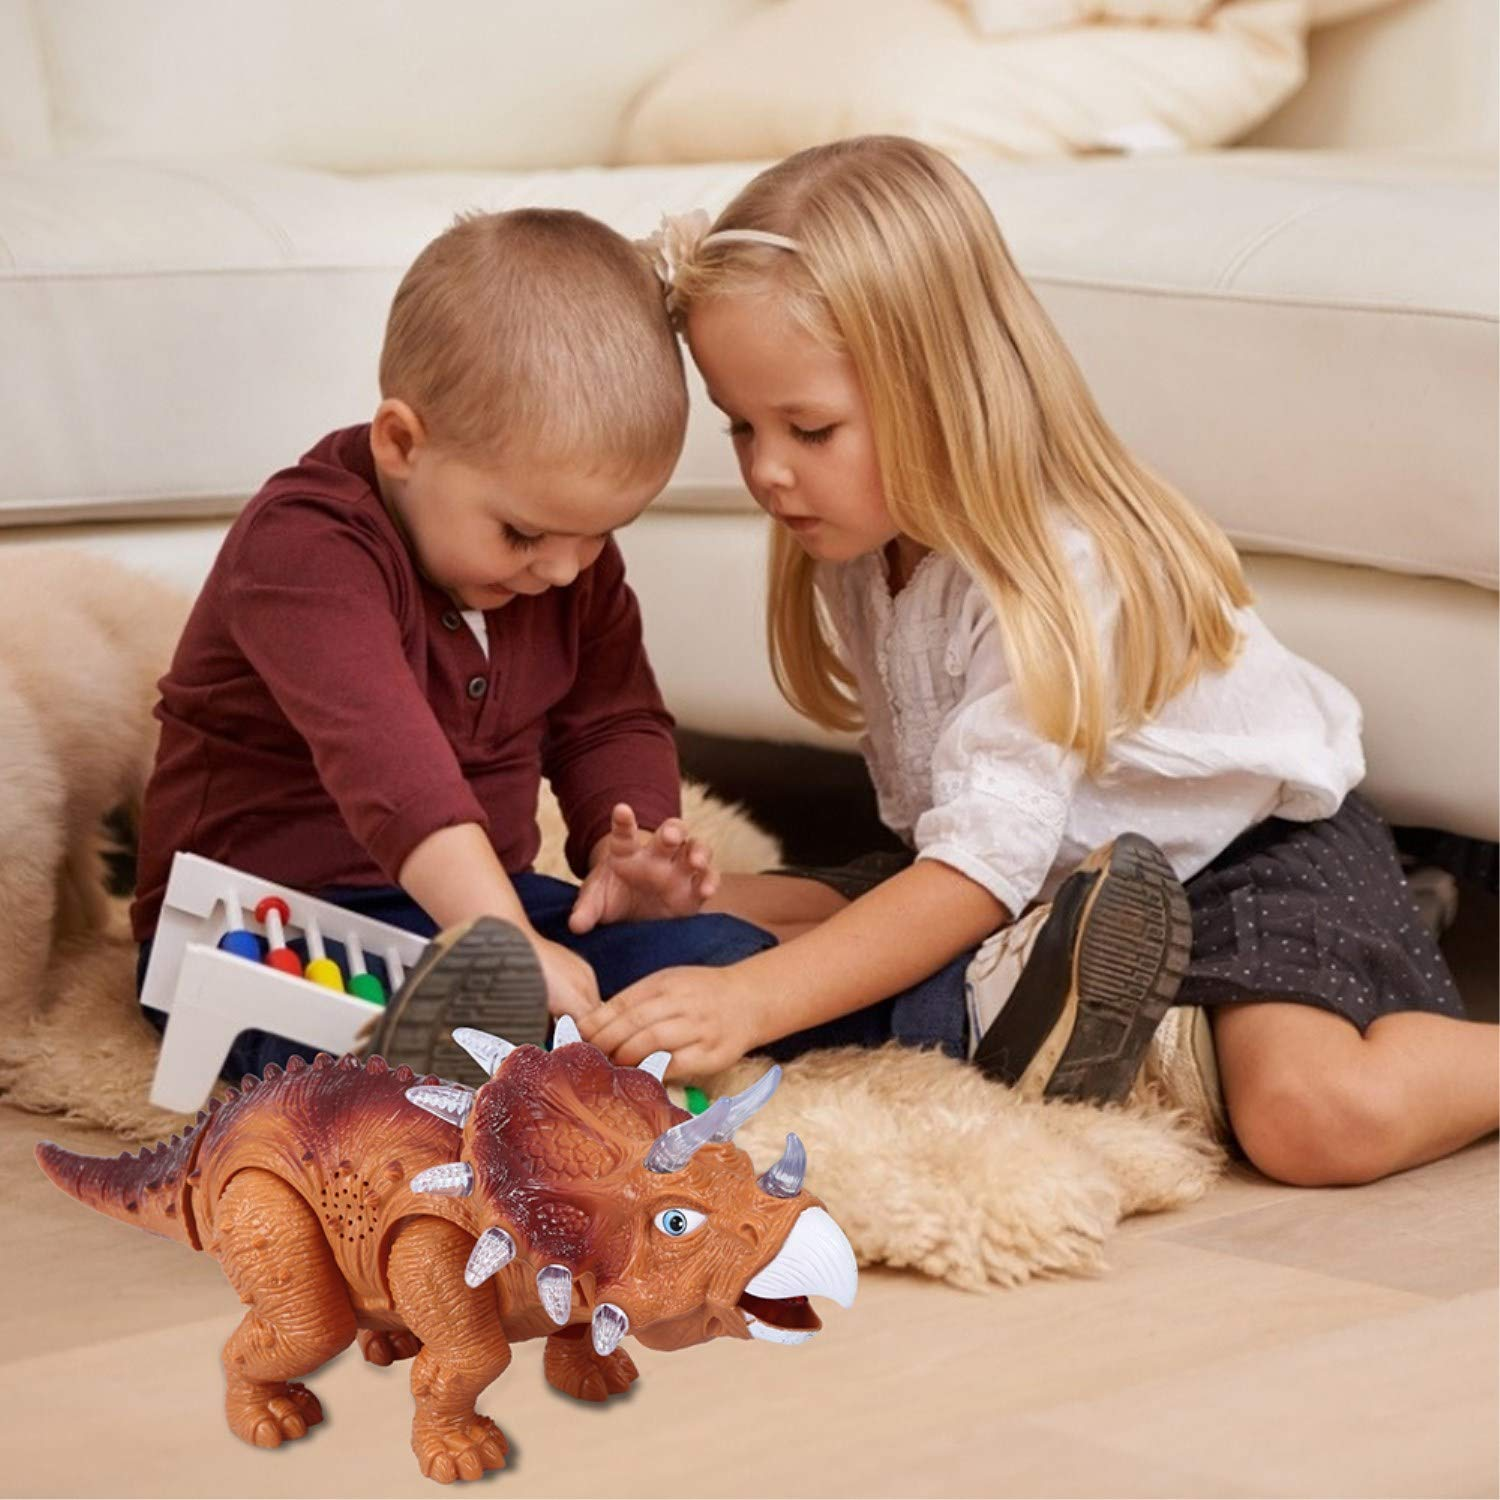 WomToy Walking Dinosaur Toys, Triceratops Dinosaur Toy Figure for Boys & Girls for Kids with Amazing Roar Sounds, Lights & Movement by WomToy (Image #5)